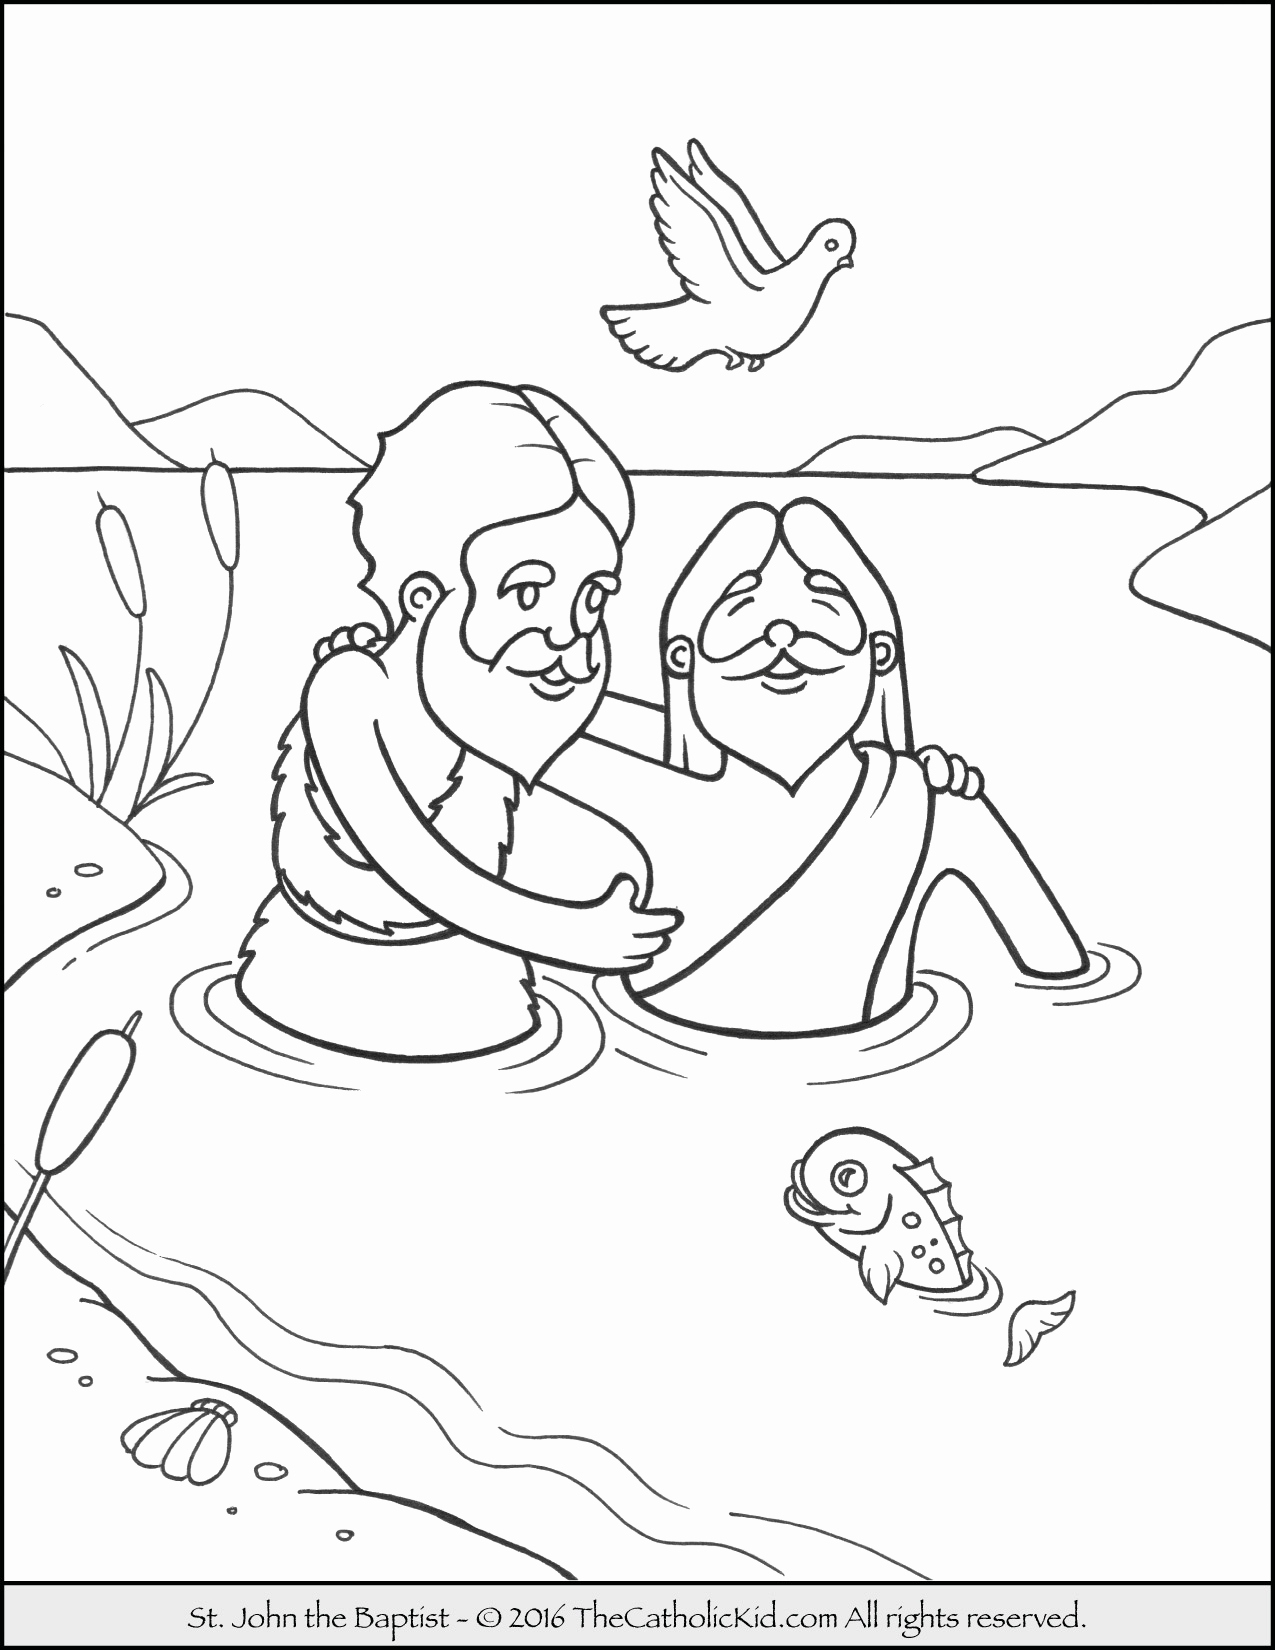 Gecko Coloring Pages  Collection 8t - To print for your project